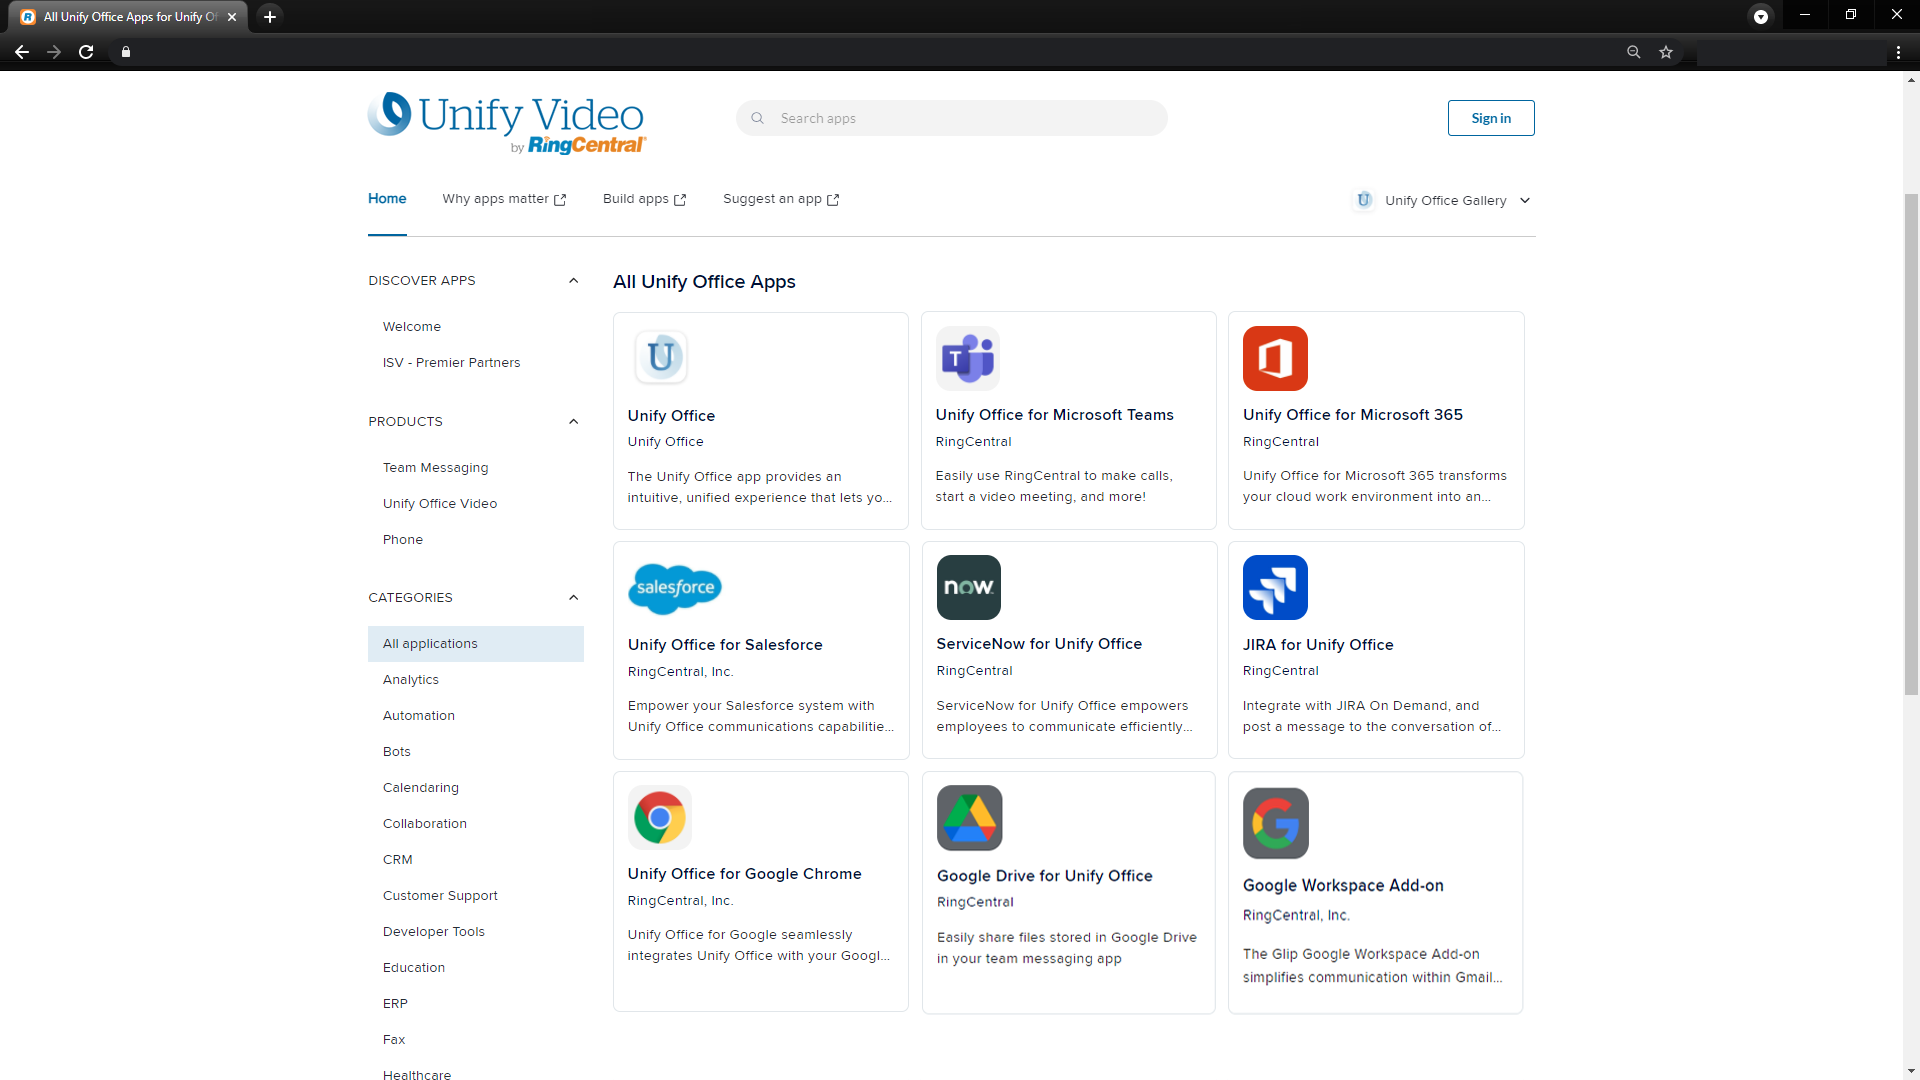 Unify video by RingCentral